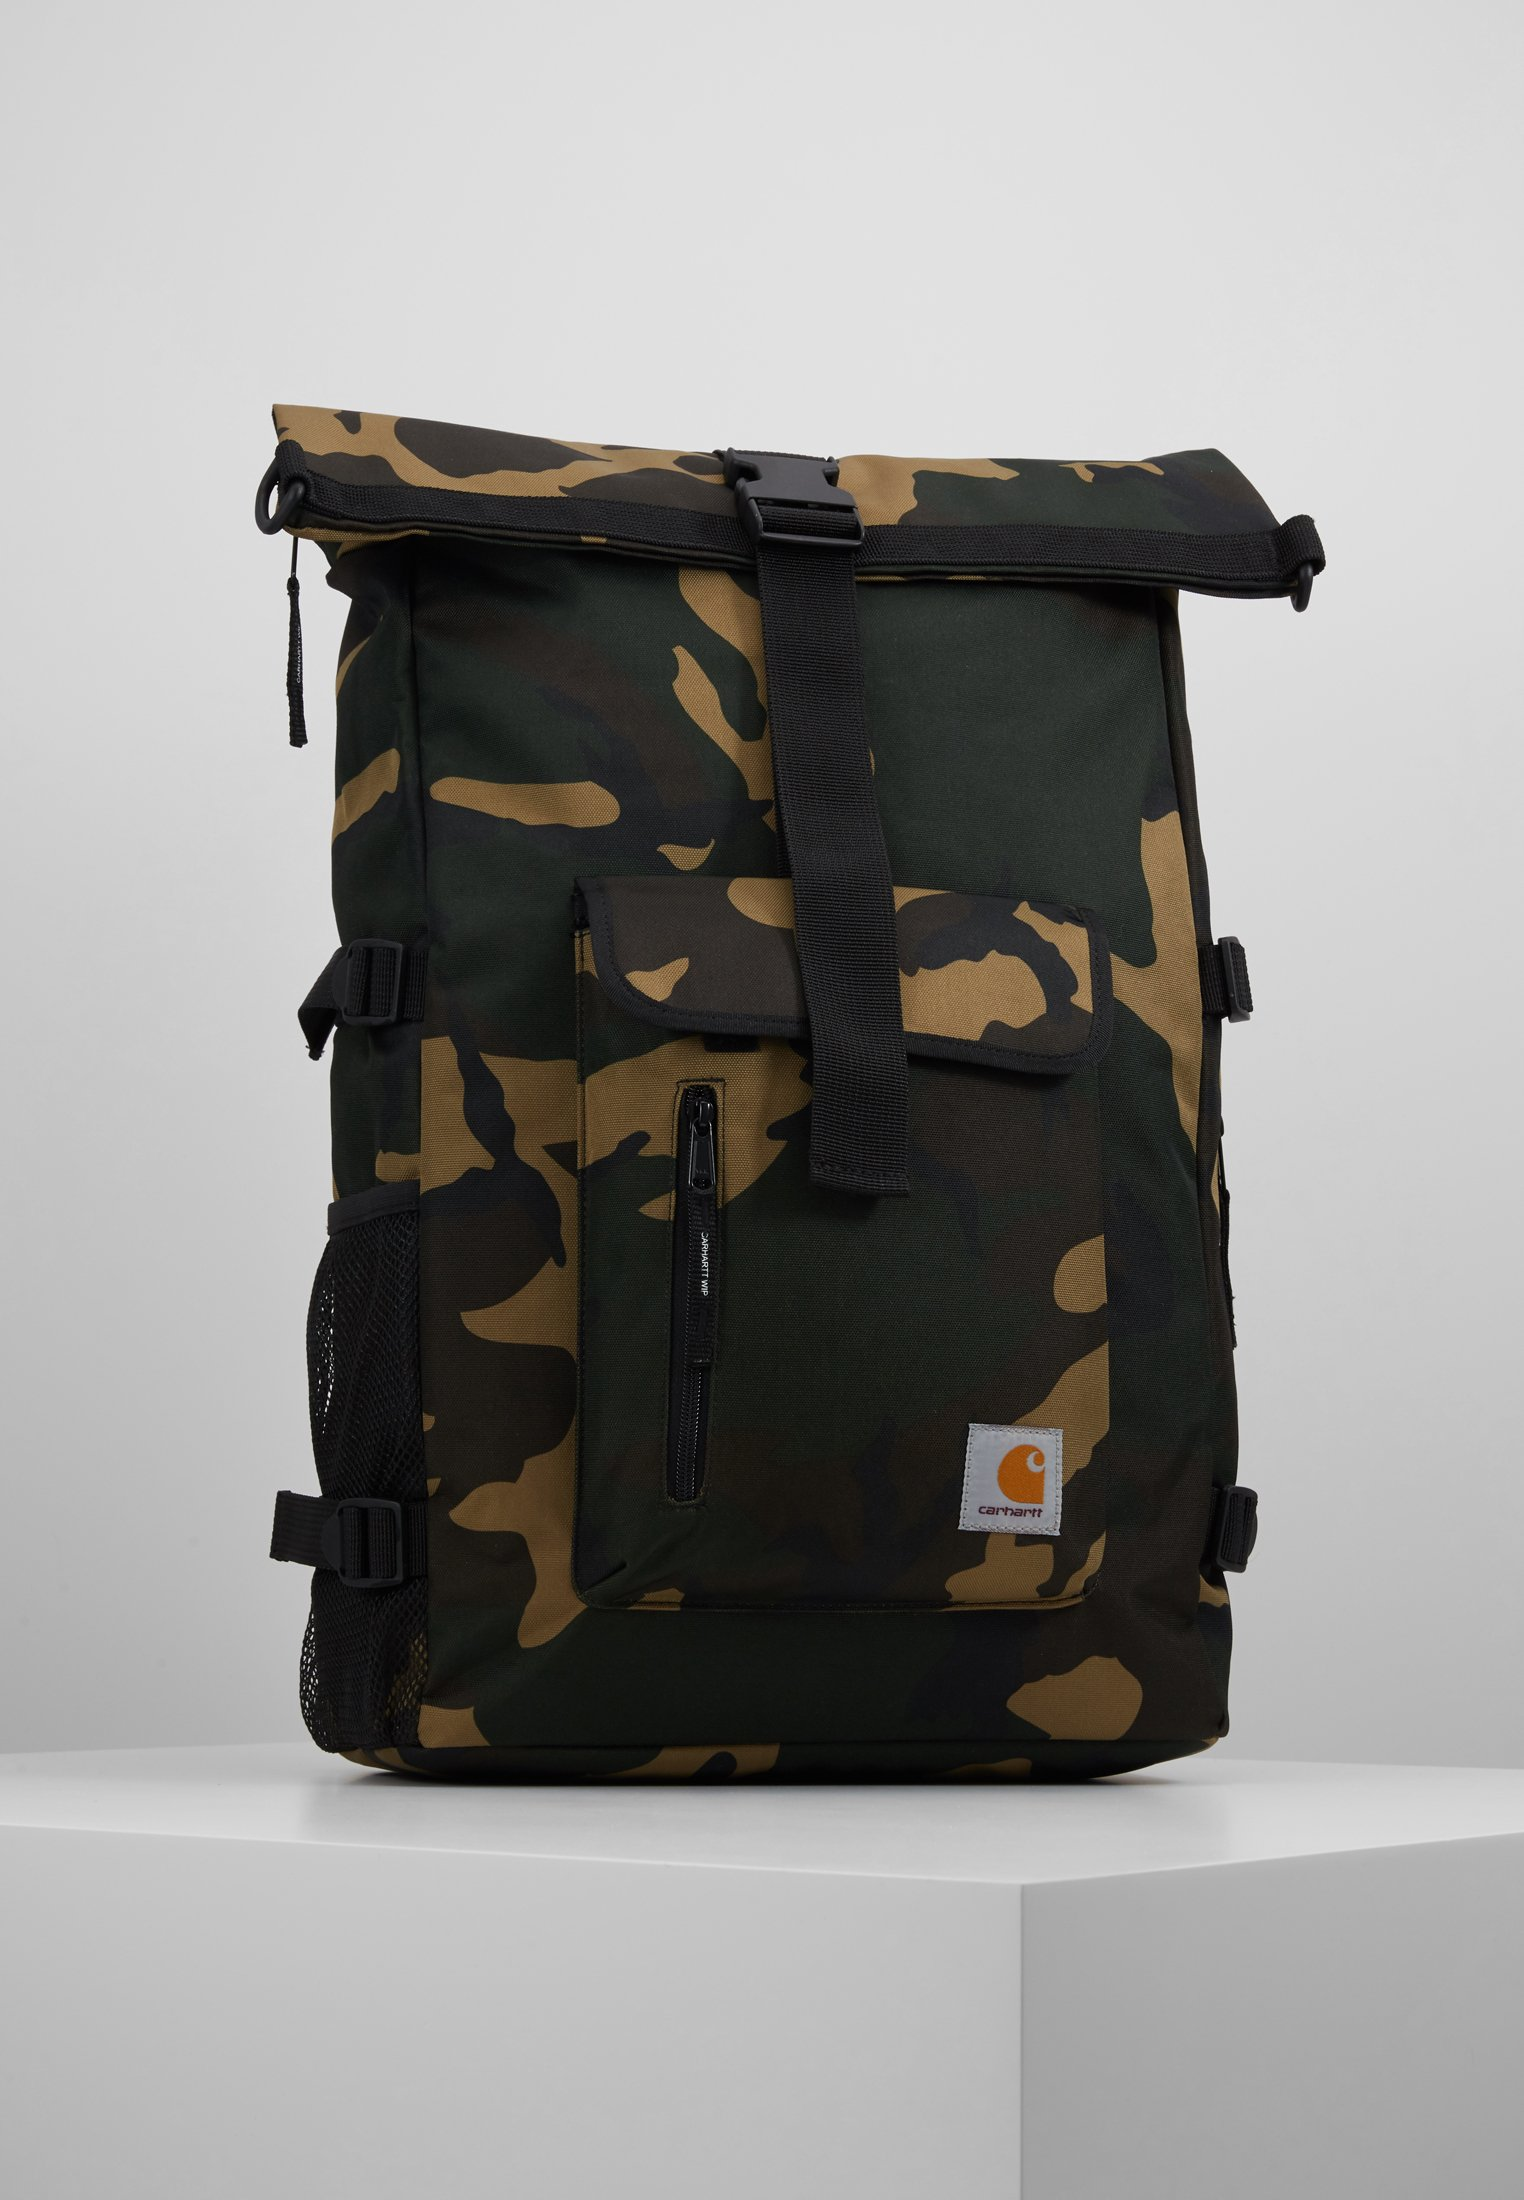 Ultimo sconto Accessori Carhartt WIP PHILIS BACKPACK Zaino laurel